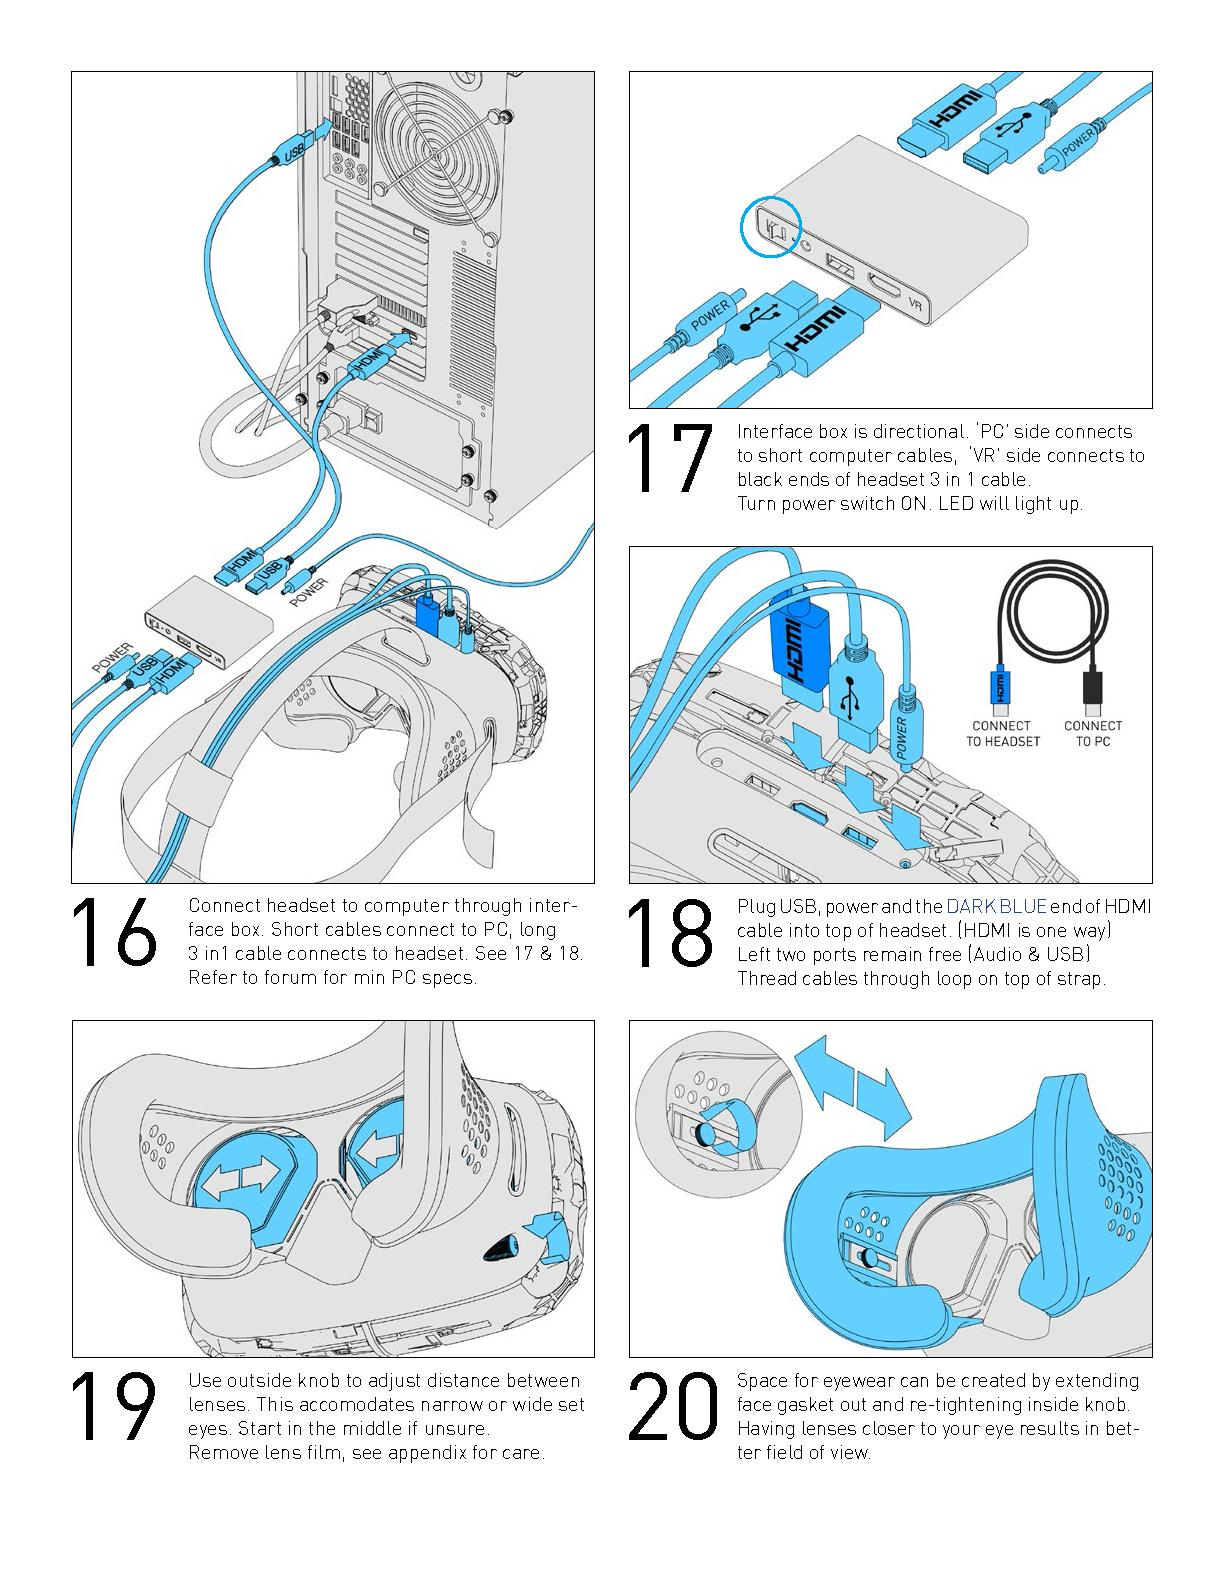 Oculus Camera Wiring Diagram Framing Antenna Side Valves Manual For The Vive Virtual Reality Dev Kit Is As Fun You On